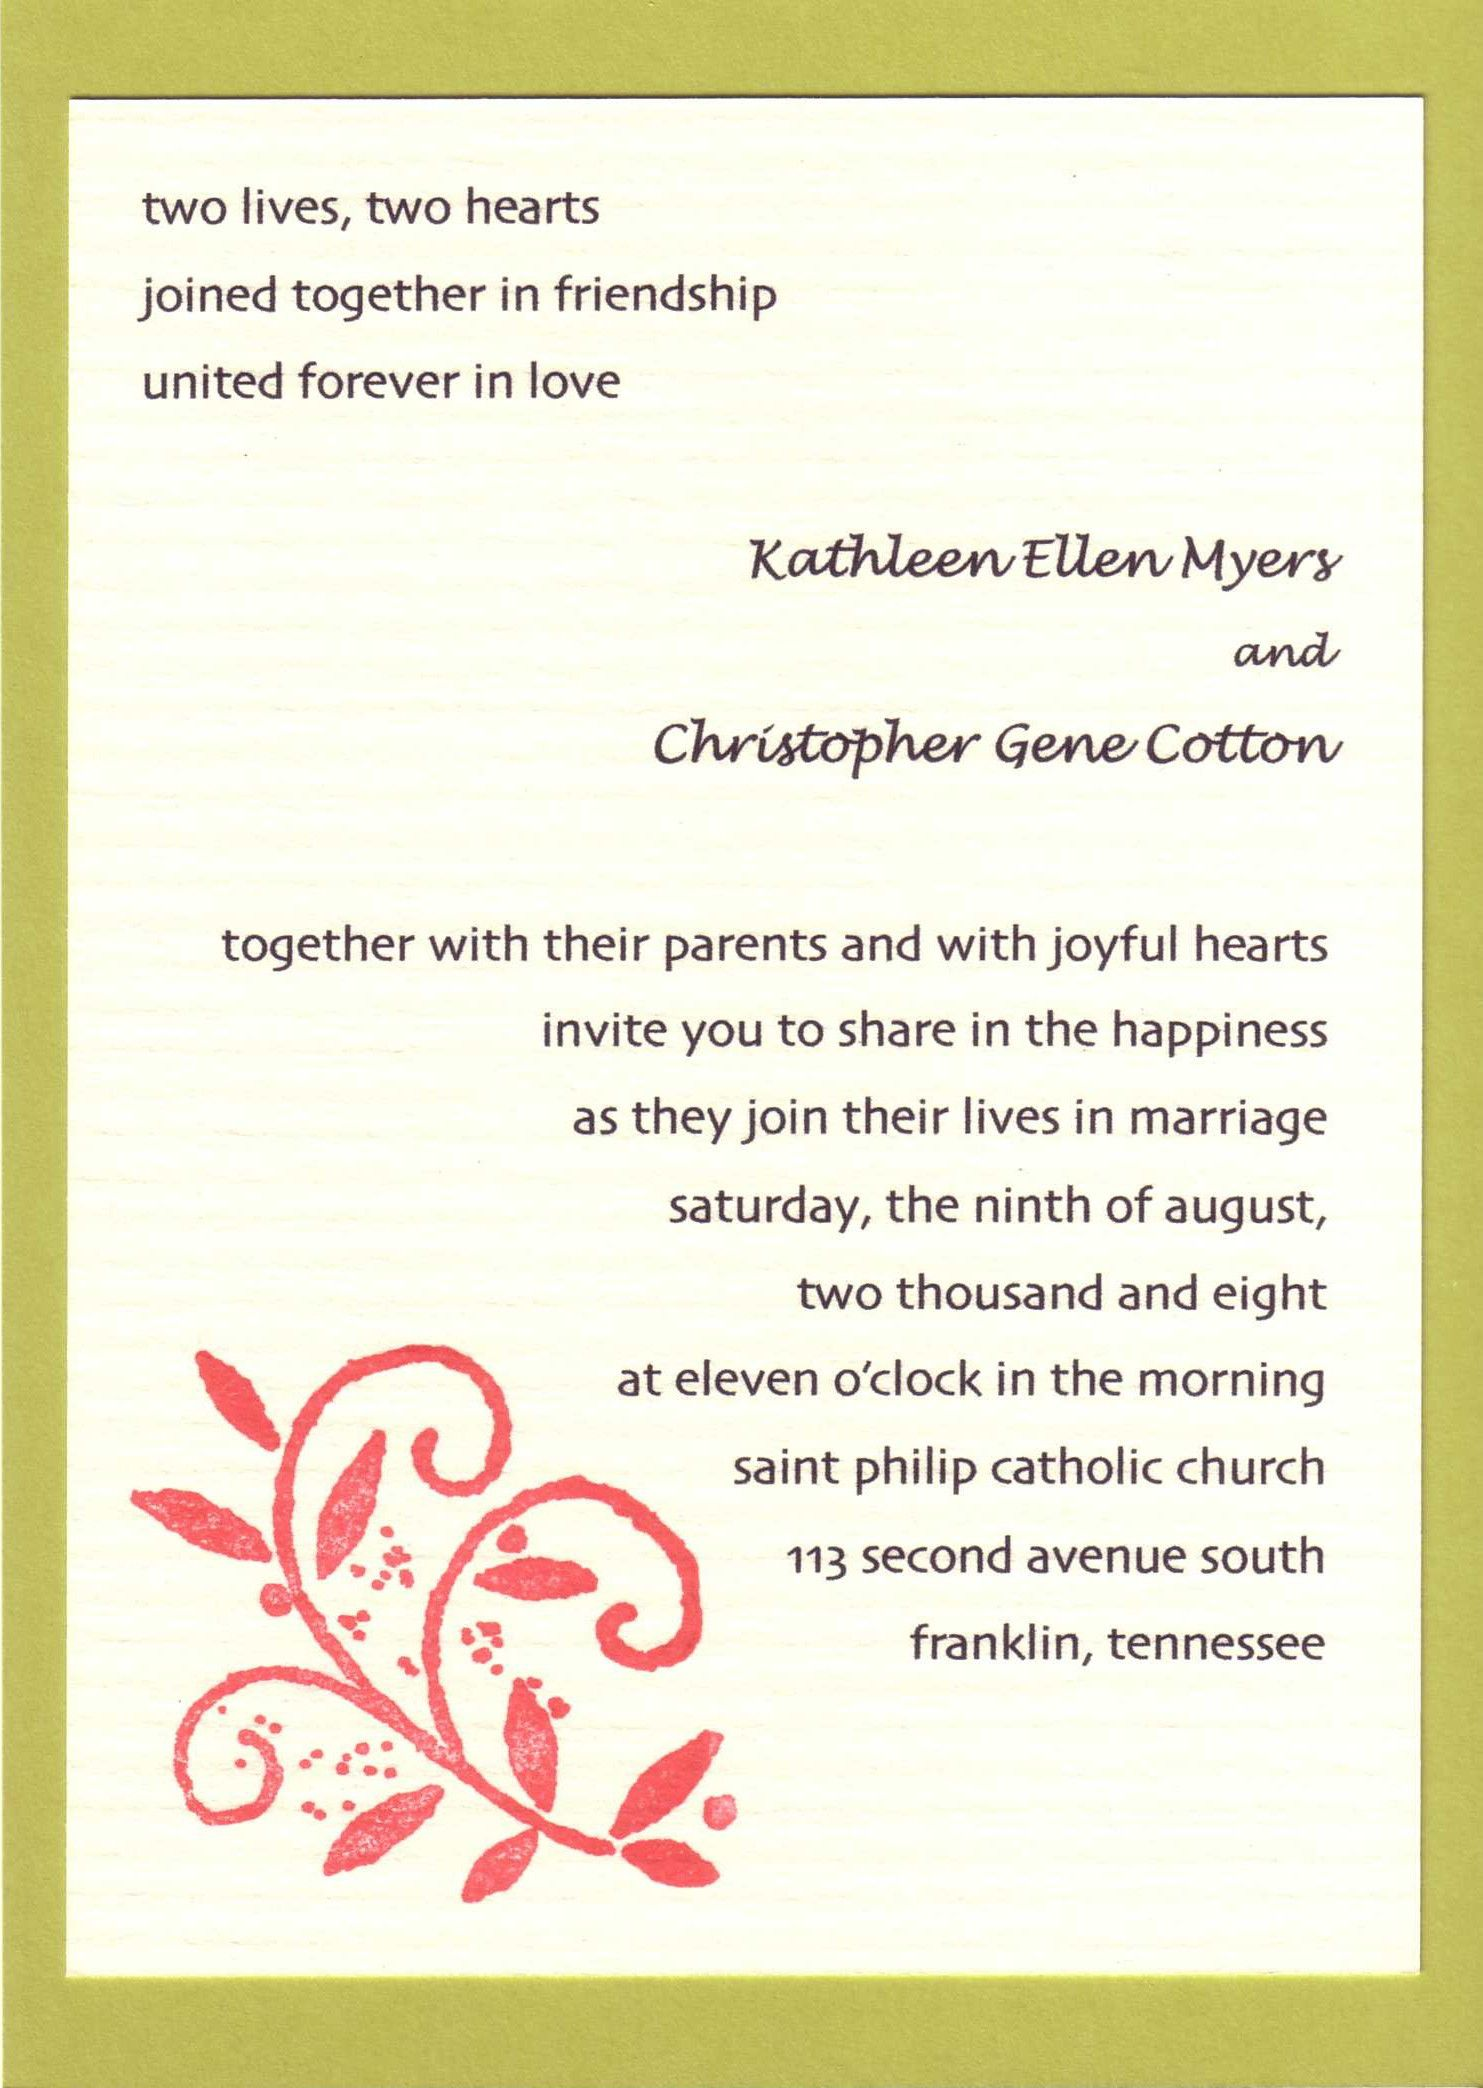 birthday invitation write up ; best-solutions-of-invitation-card-write-up-on-wedding-invitations-cards-wording-wedding-card-invitation-of-invitation-card-write-up